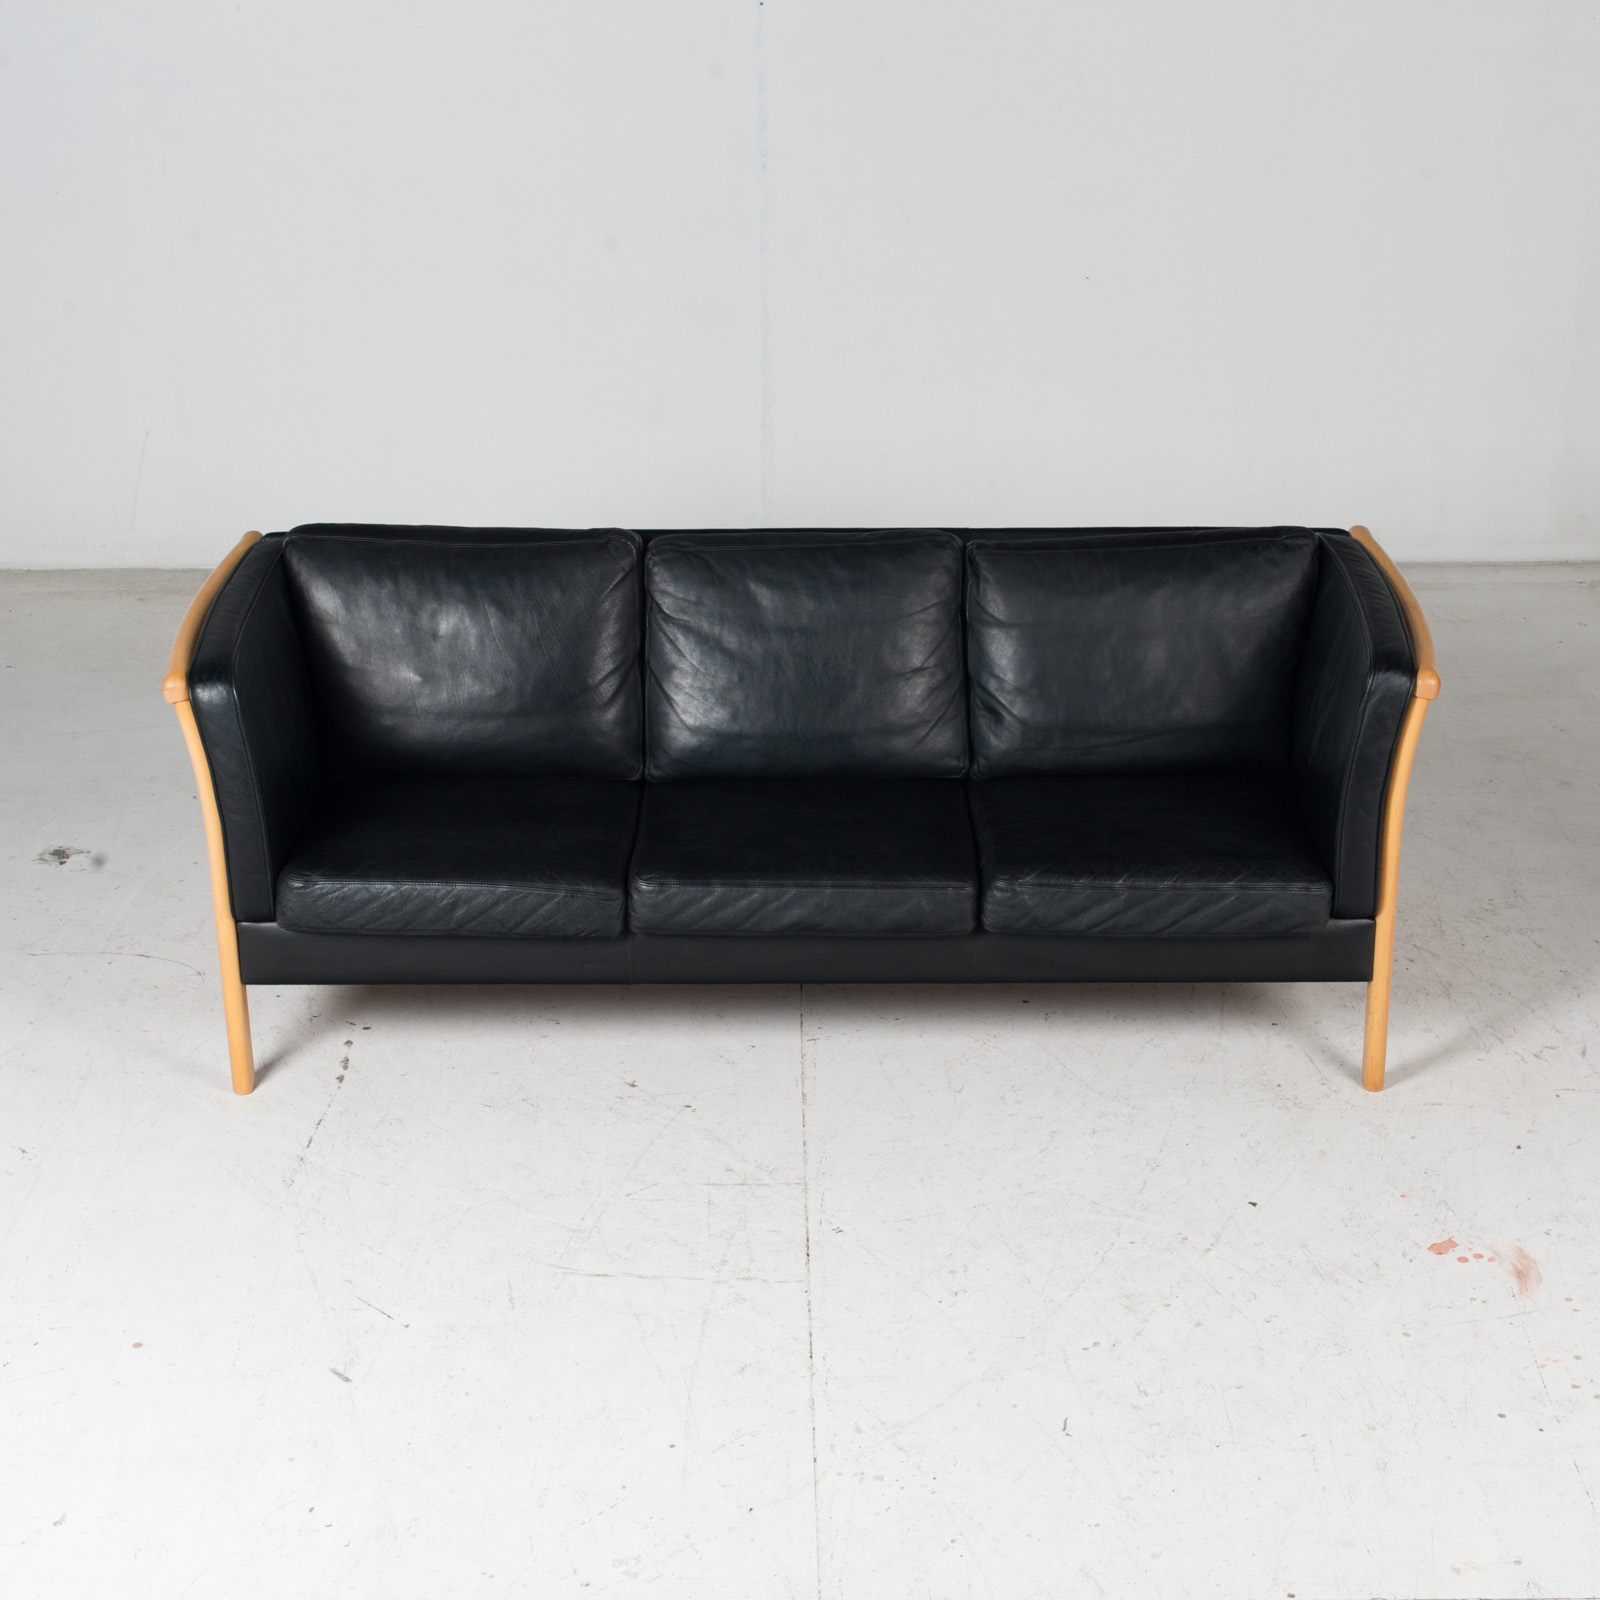 3 Seat Sofa By Stouby In Black Leather, 1960s, Denmark 4